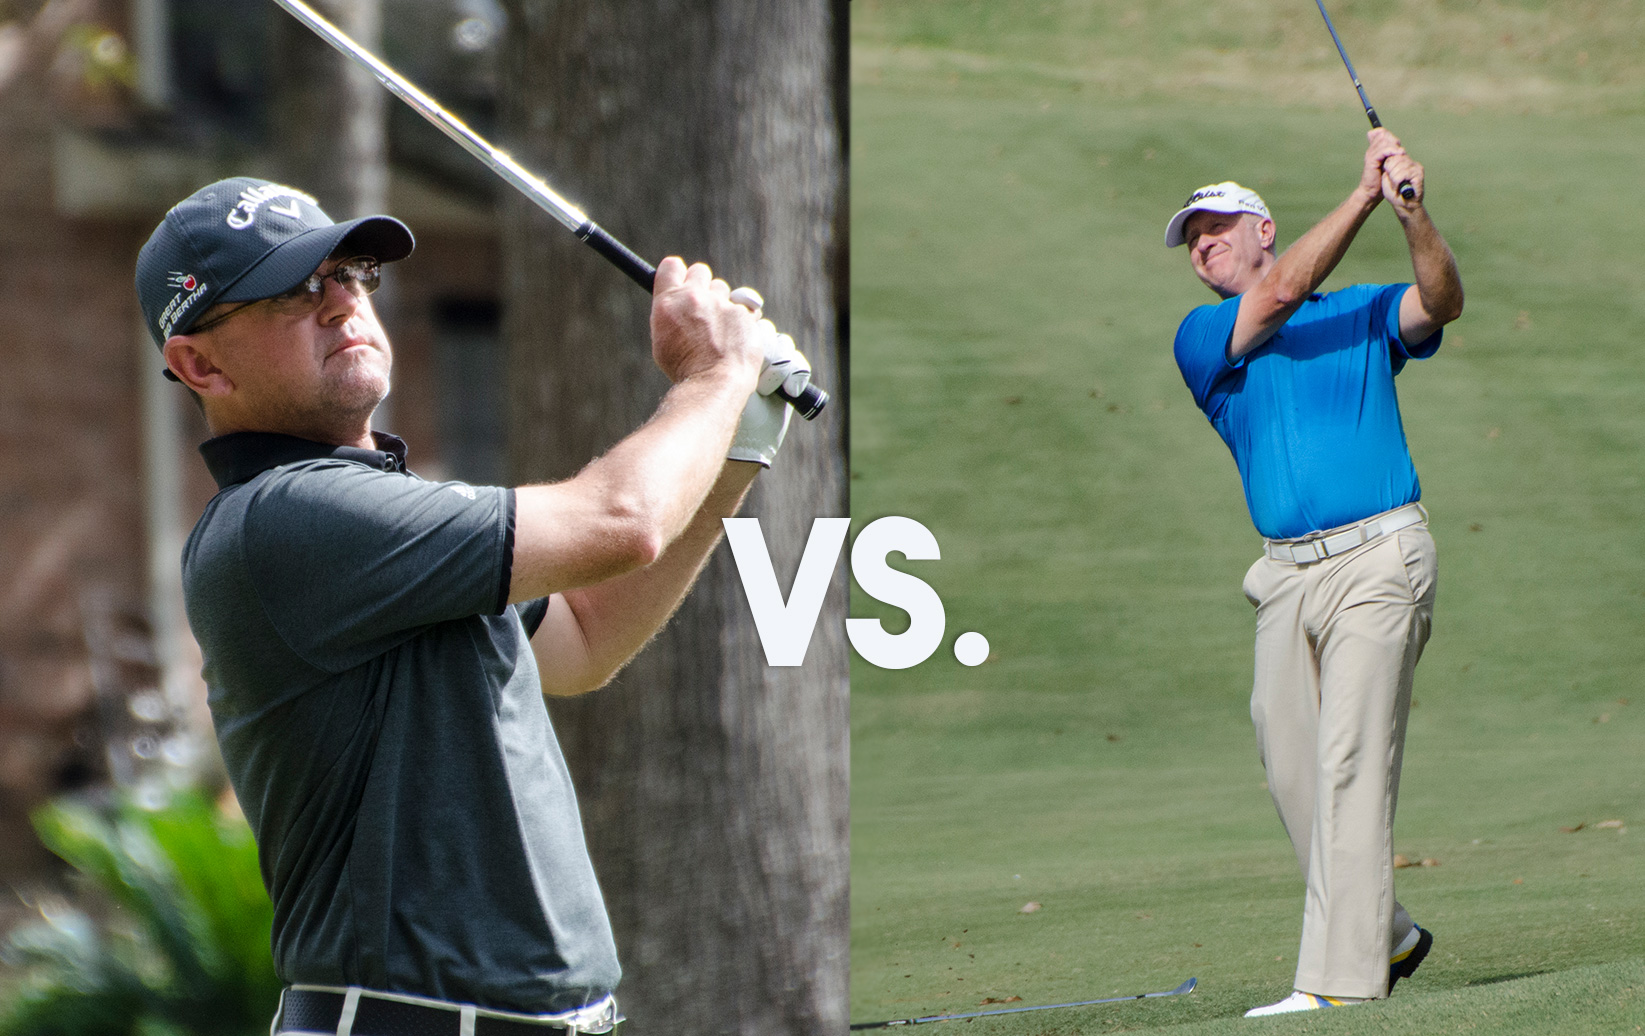 Norris & Gregory Set to Face Off in Final Match of the Yamaha Golf-Car Company / Lajitas Golf Resort Match Play Championship